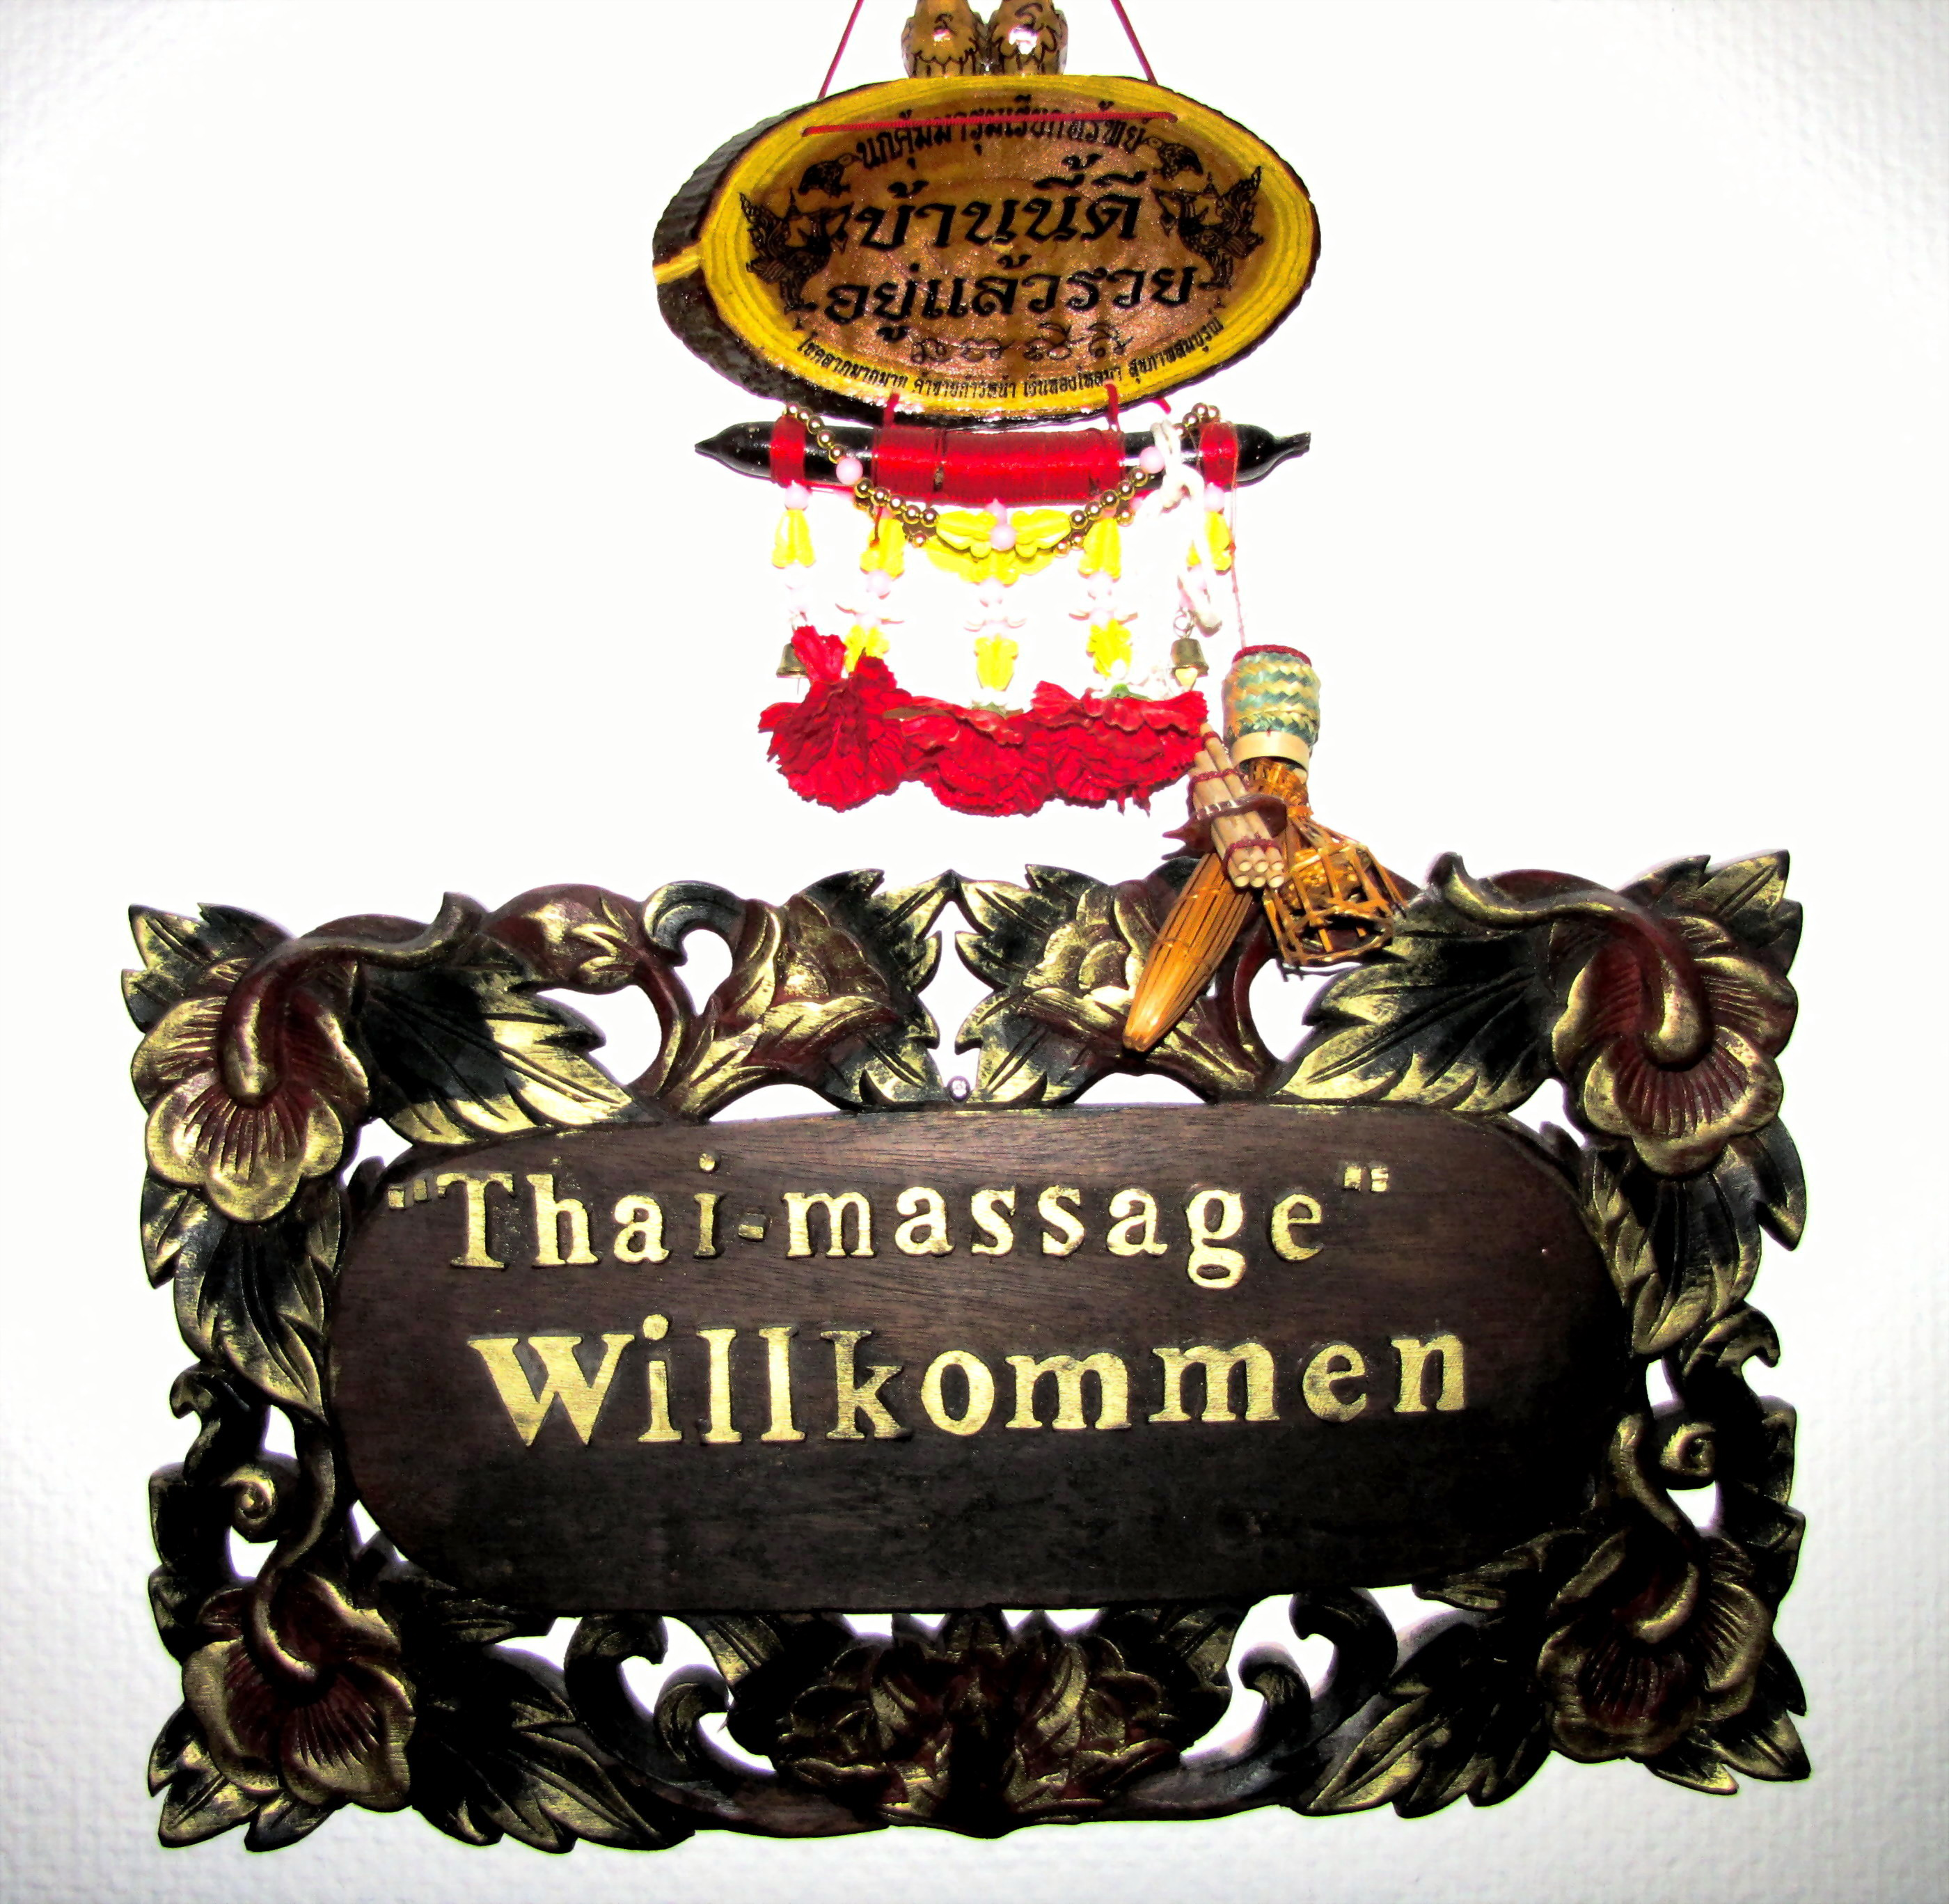 eskorter i sverige kinaree thai massage